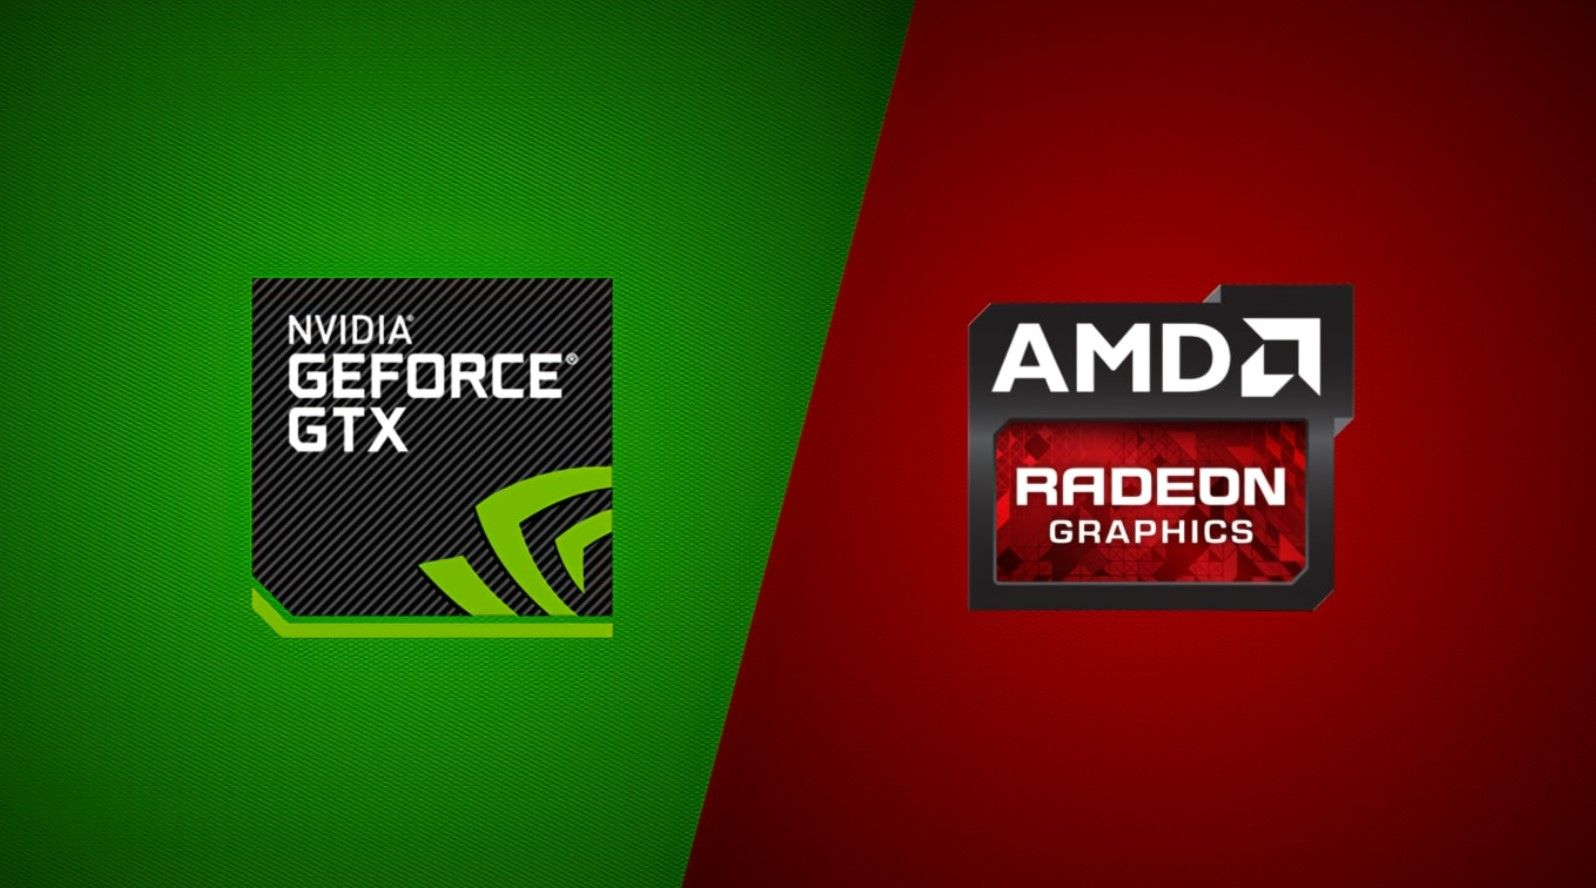 Logos of Nvidia and AMD